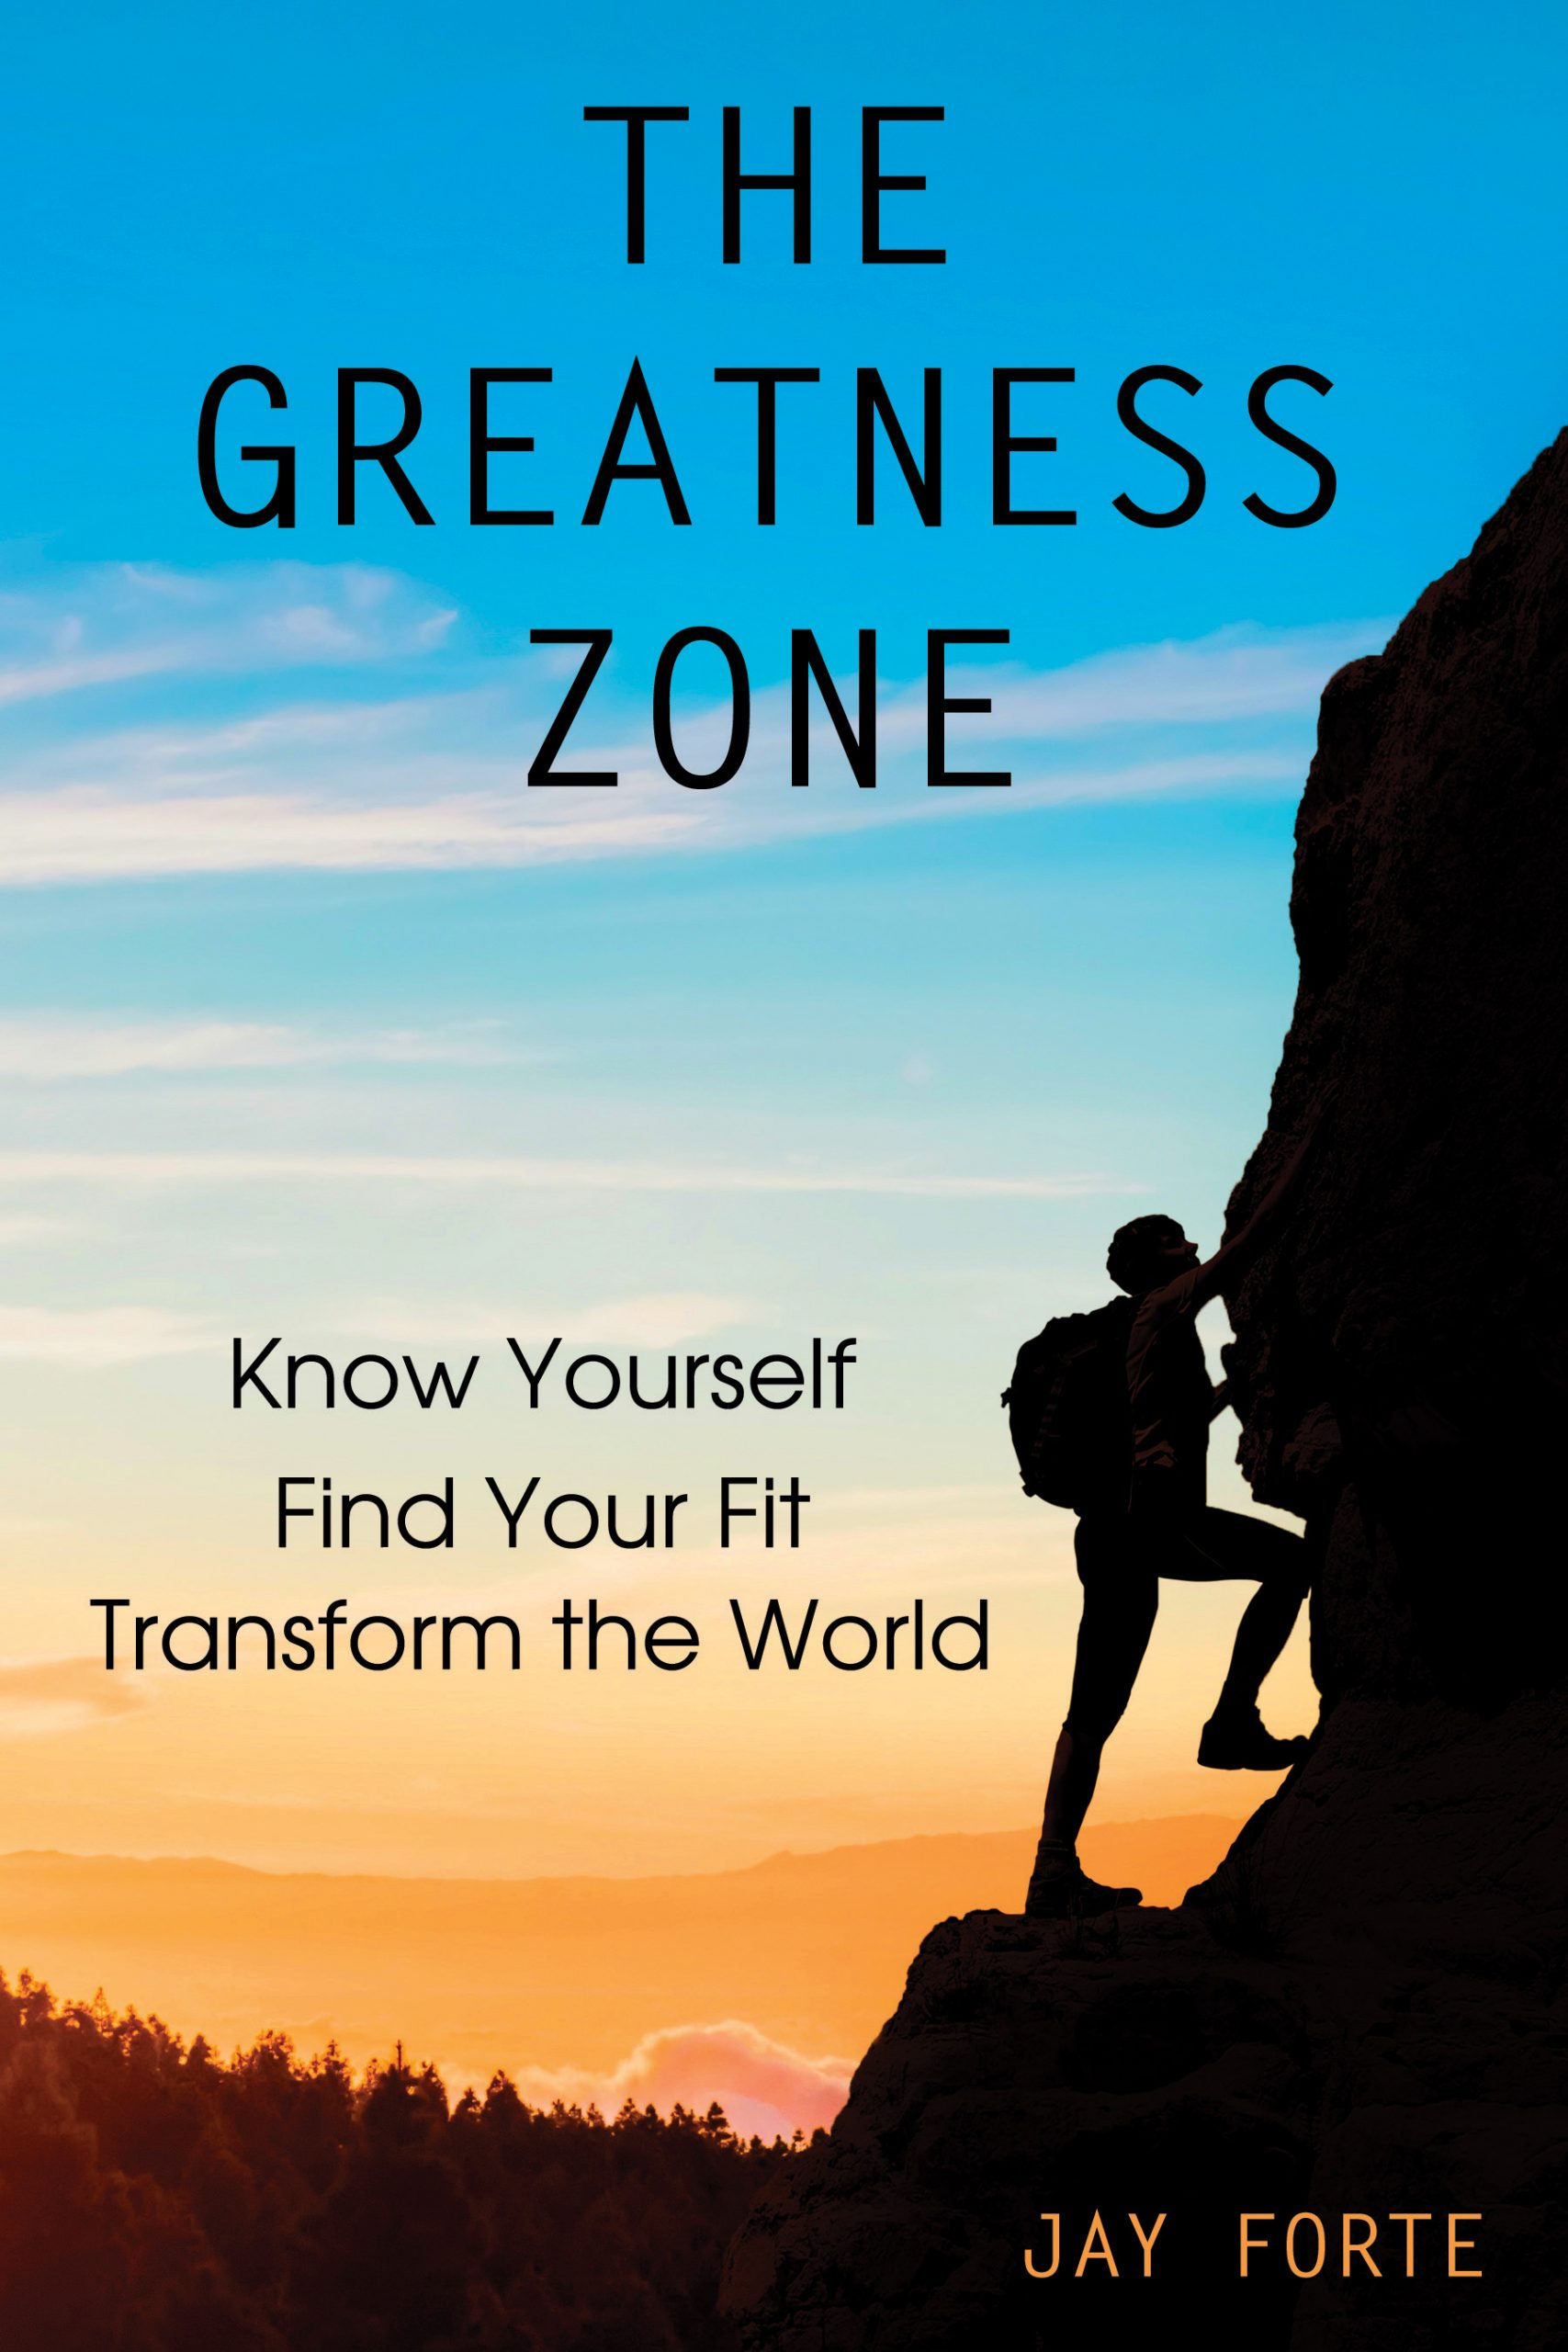 The Greatness Zone (Book)